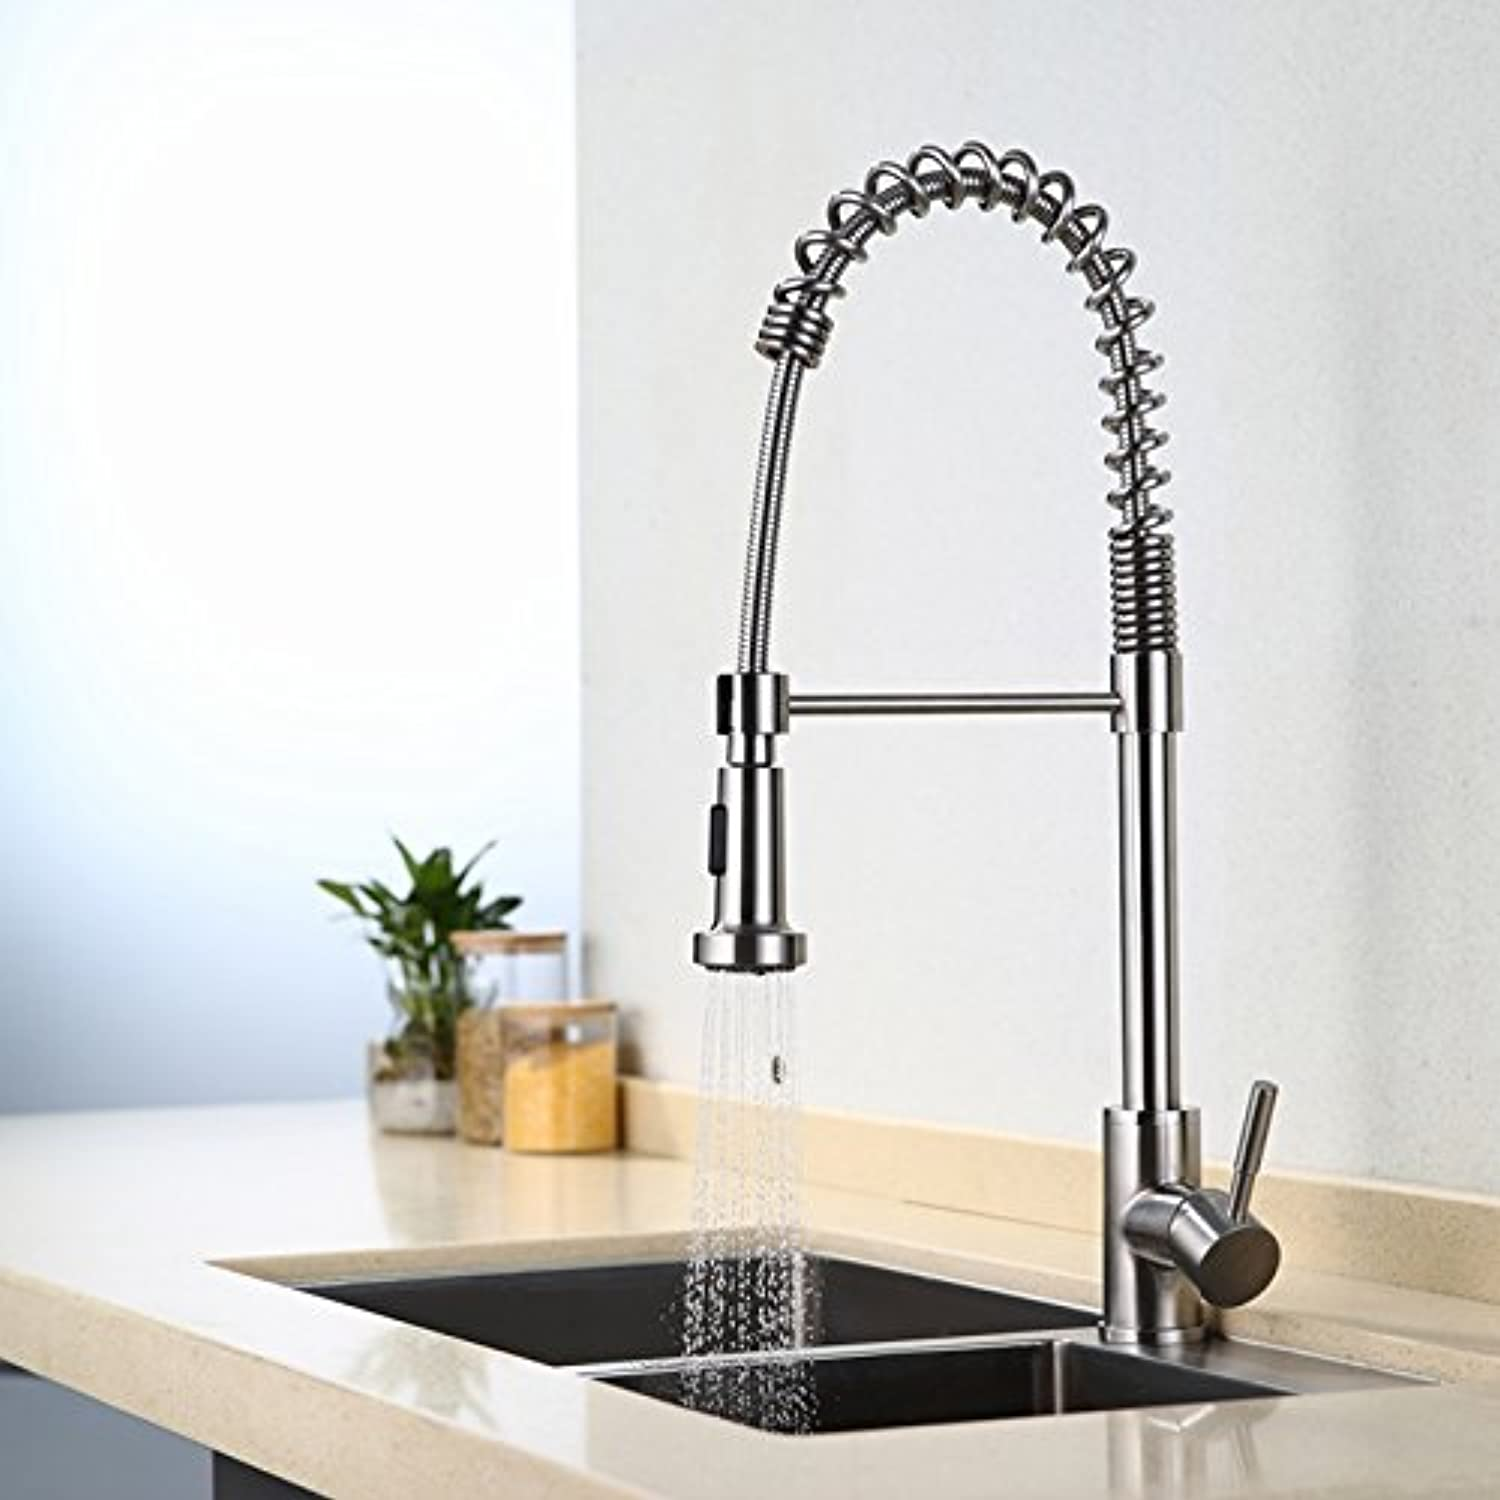 Retro Deluxe Faucetinging DistinguishedCeramic Chrome Polished Kitchen Faucet Deck Mounted Pull Down Single Hole Hot Cold Water Mixer Fine Kitchen Faucet